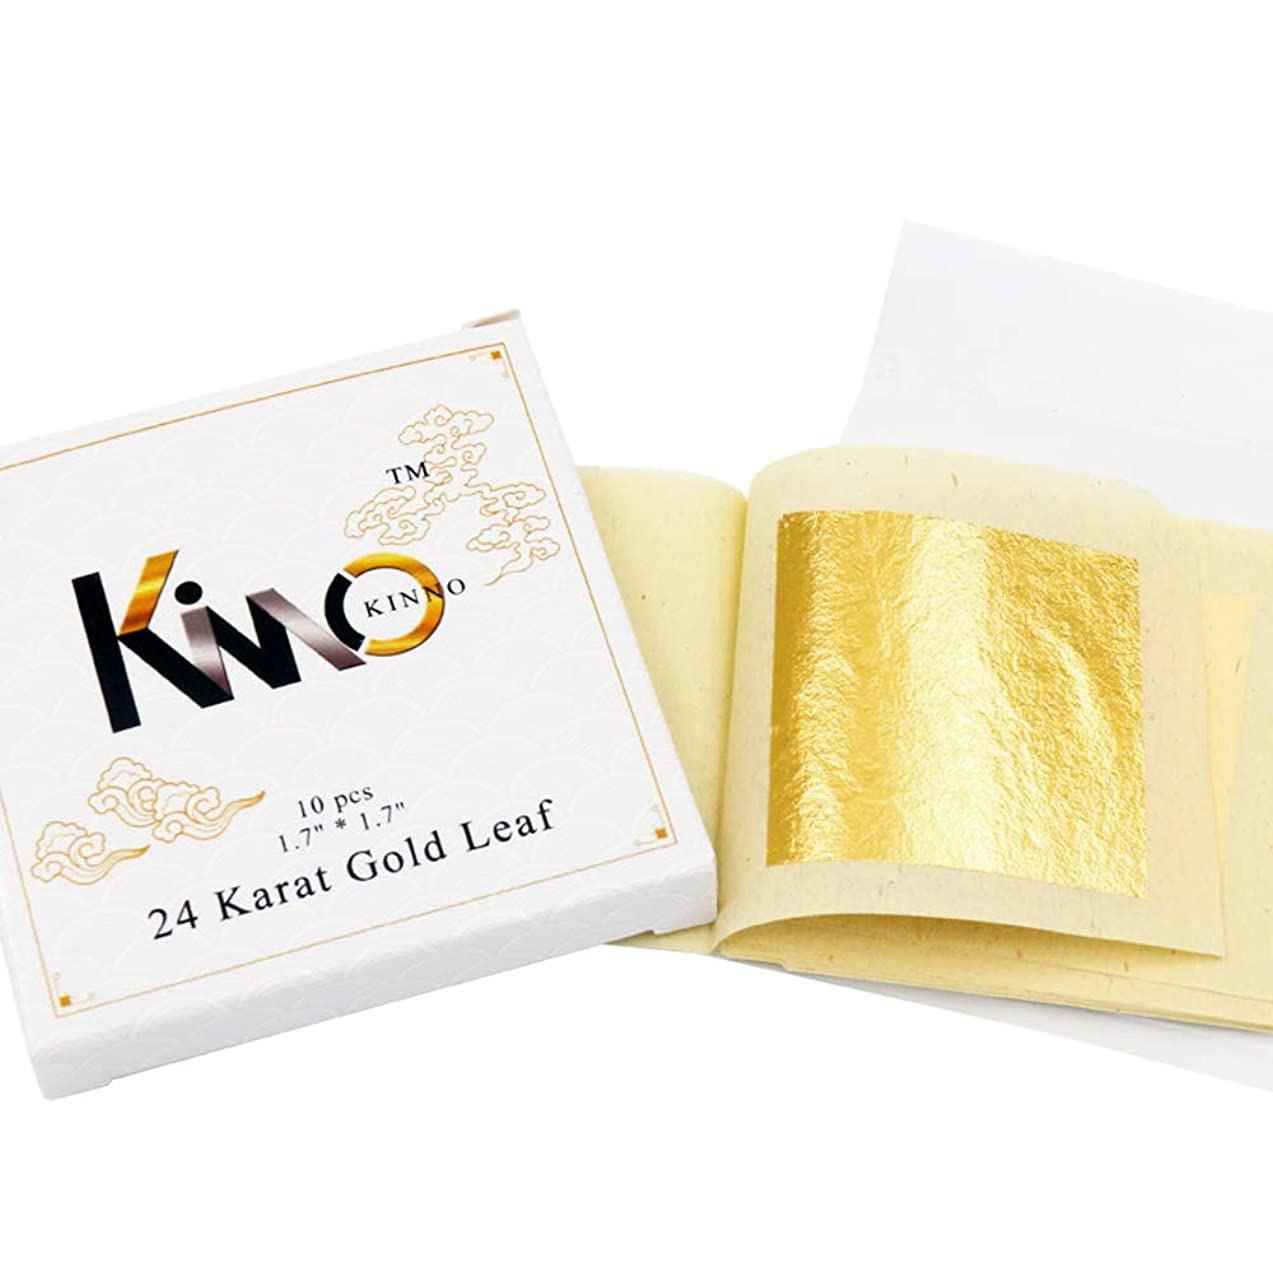 KINNO Edible Gold Leaf Sheets 10 Sheets 4.33 x 4.33 cm 24K Pure Genuine Facial Gold Foil for Cooking, Cakes & Chocolates, Decoration, Health & Spa